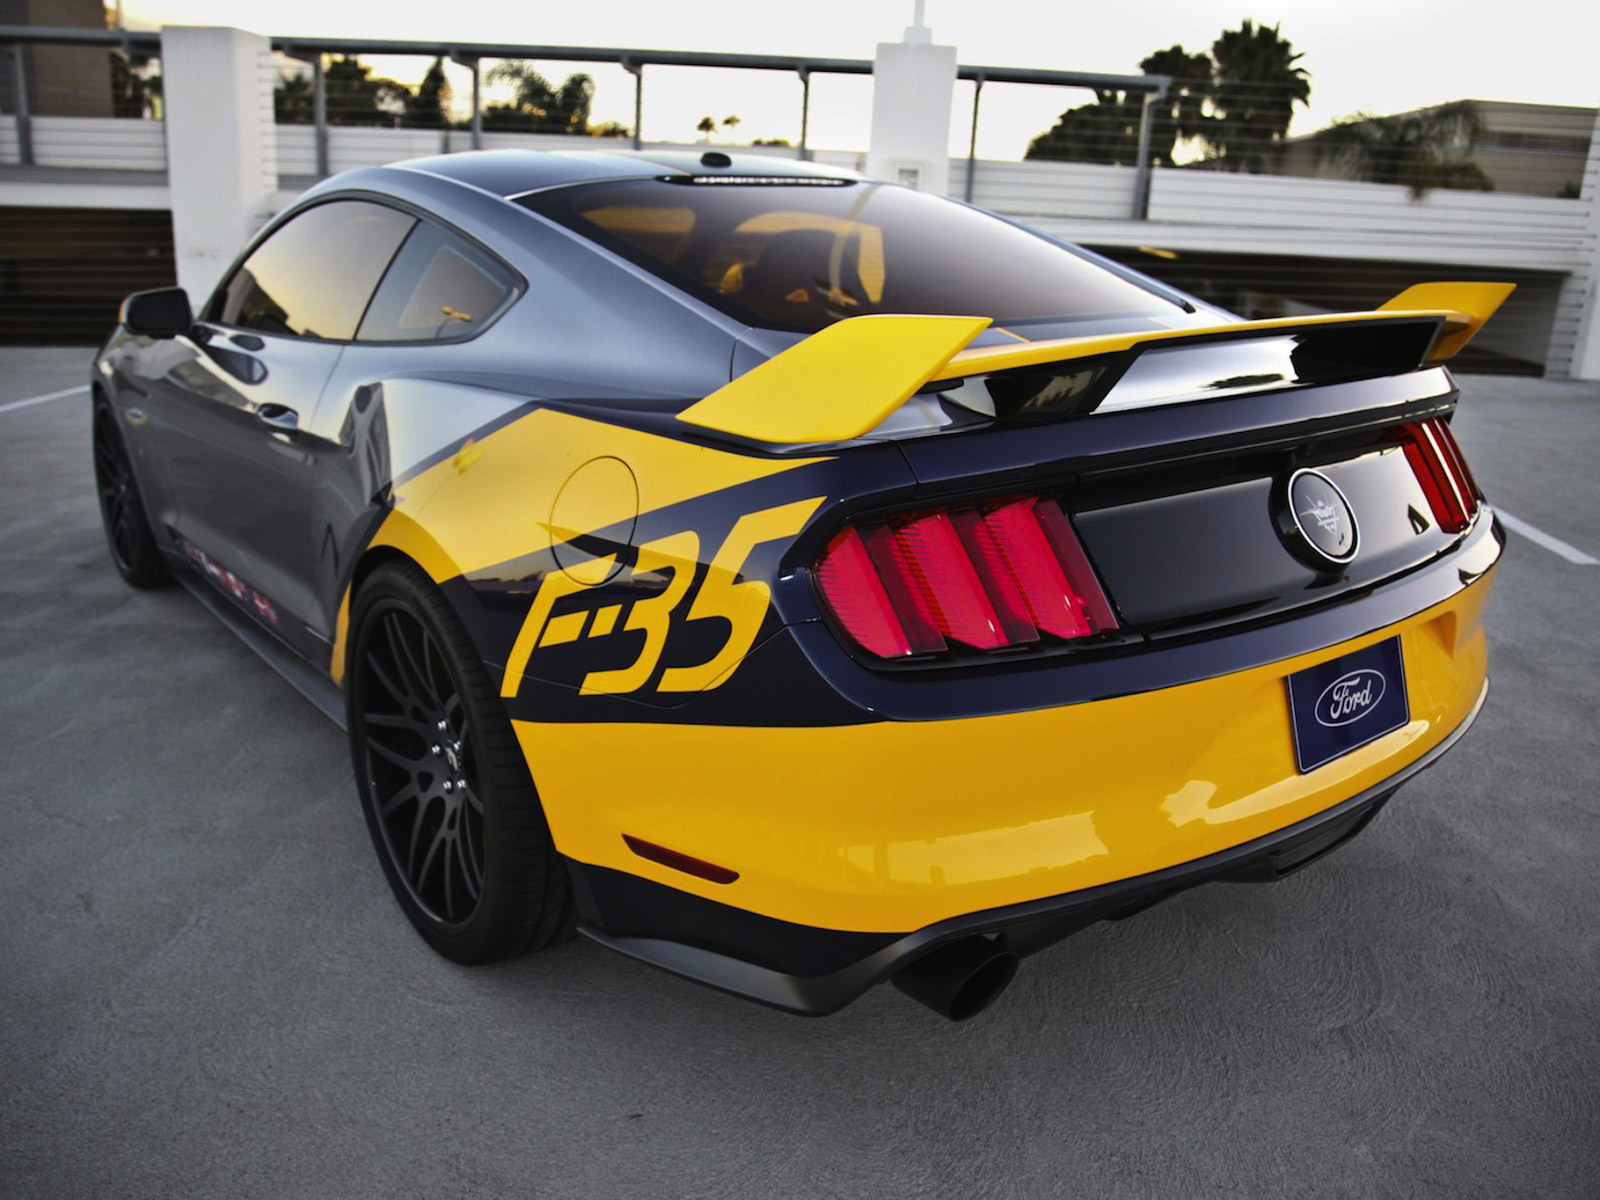 2015 Ford Mustang F-35 Lightning II revealed | AmcarGuide.com